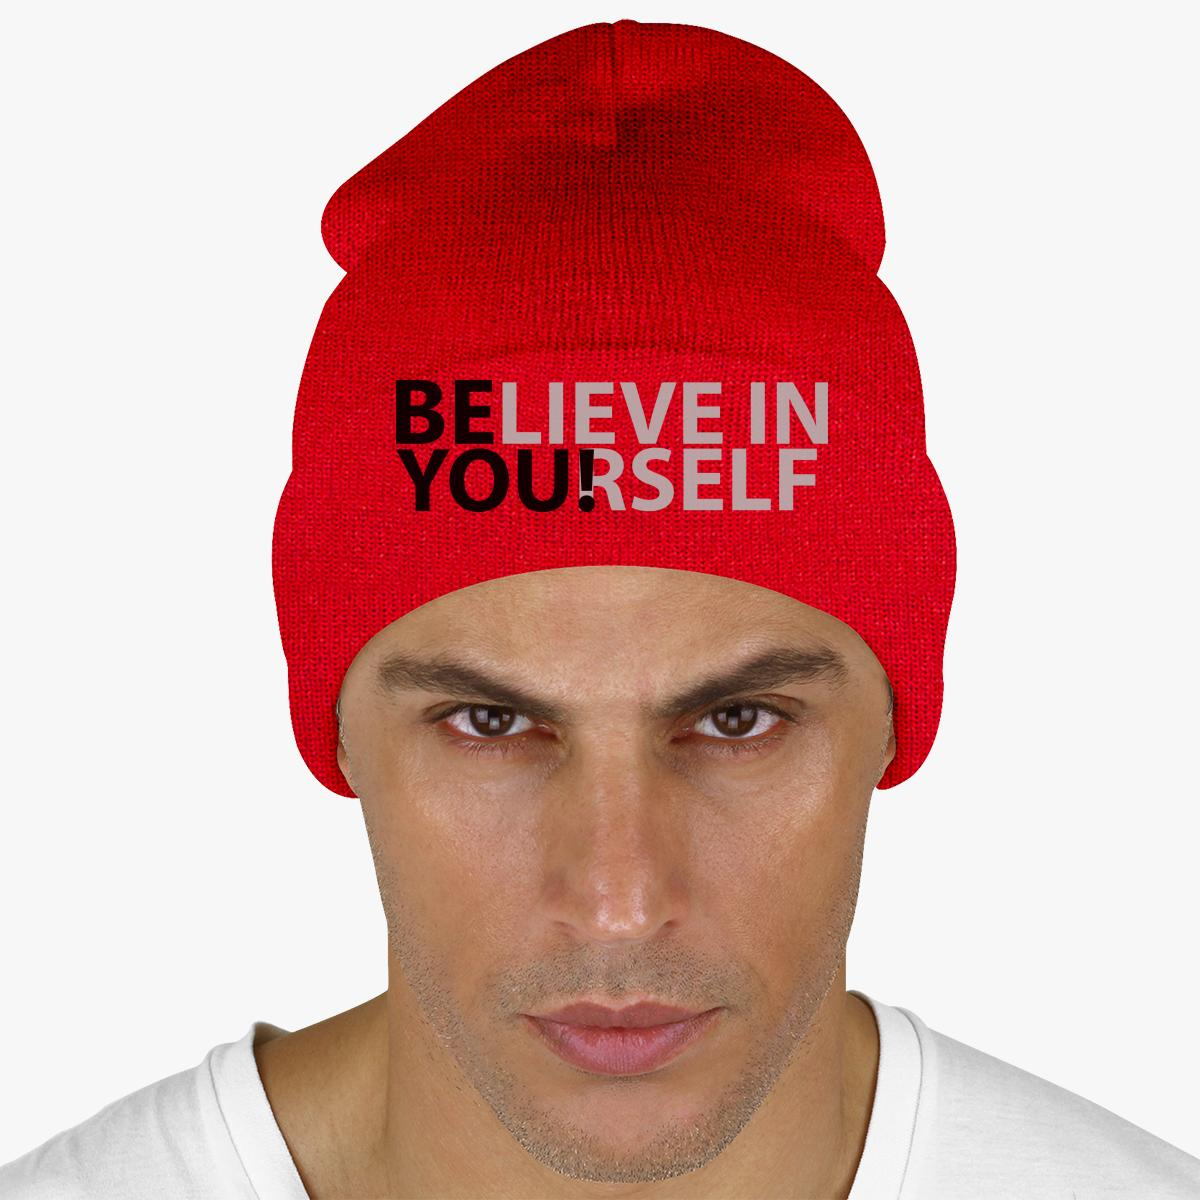 BELIEVE IN YOURSELF Knit Cap